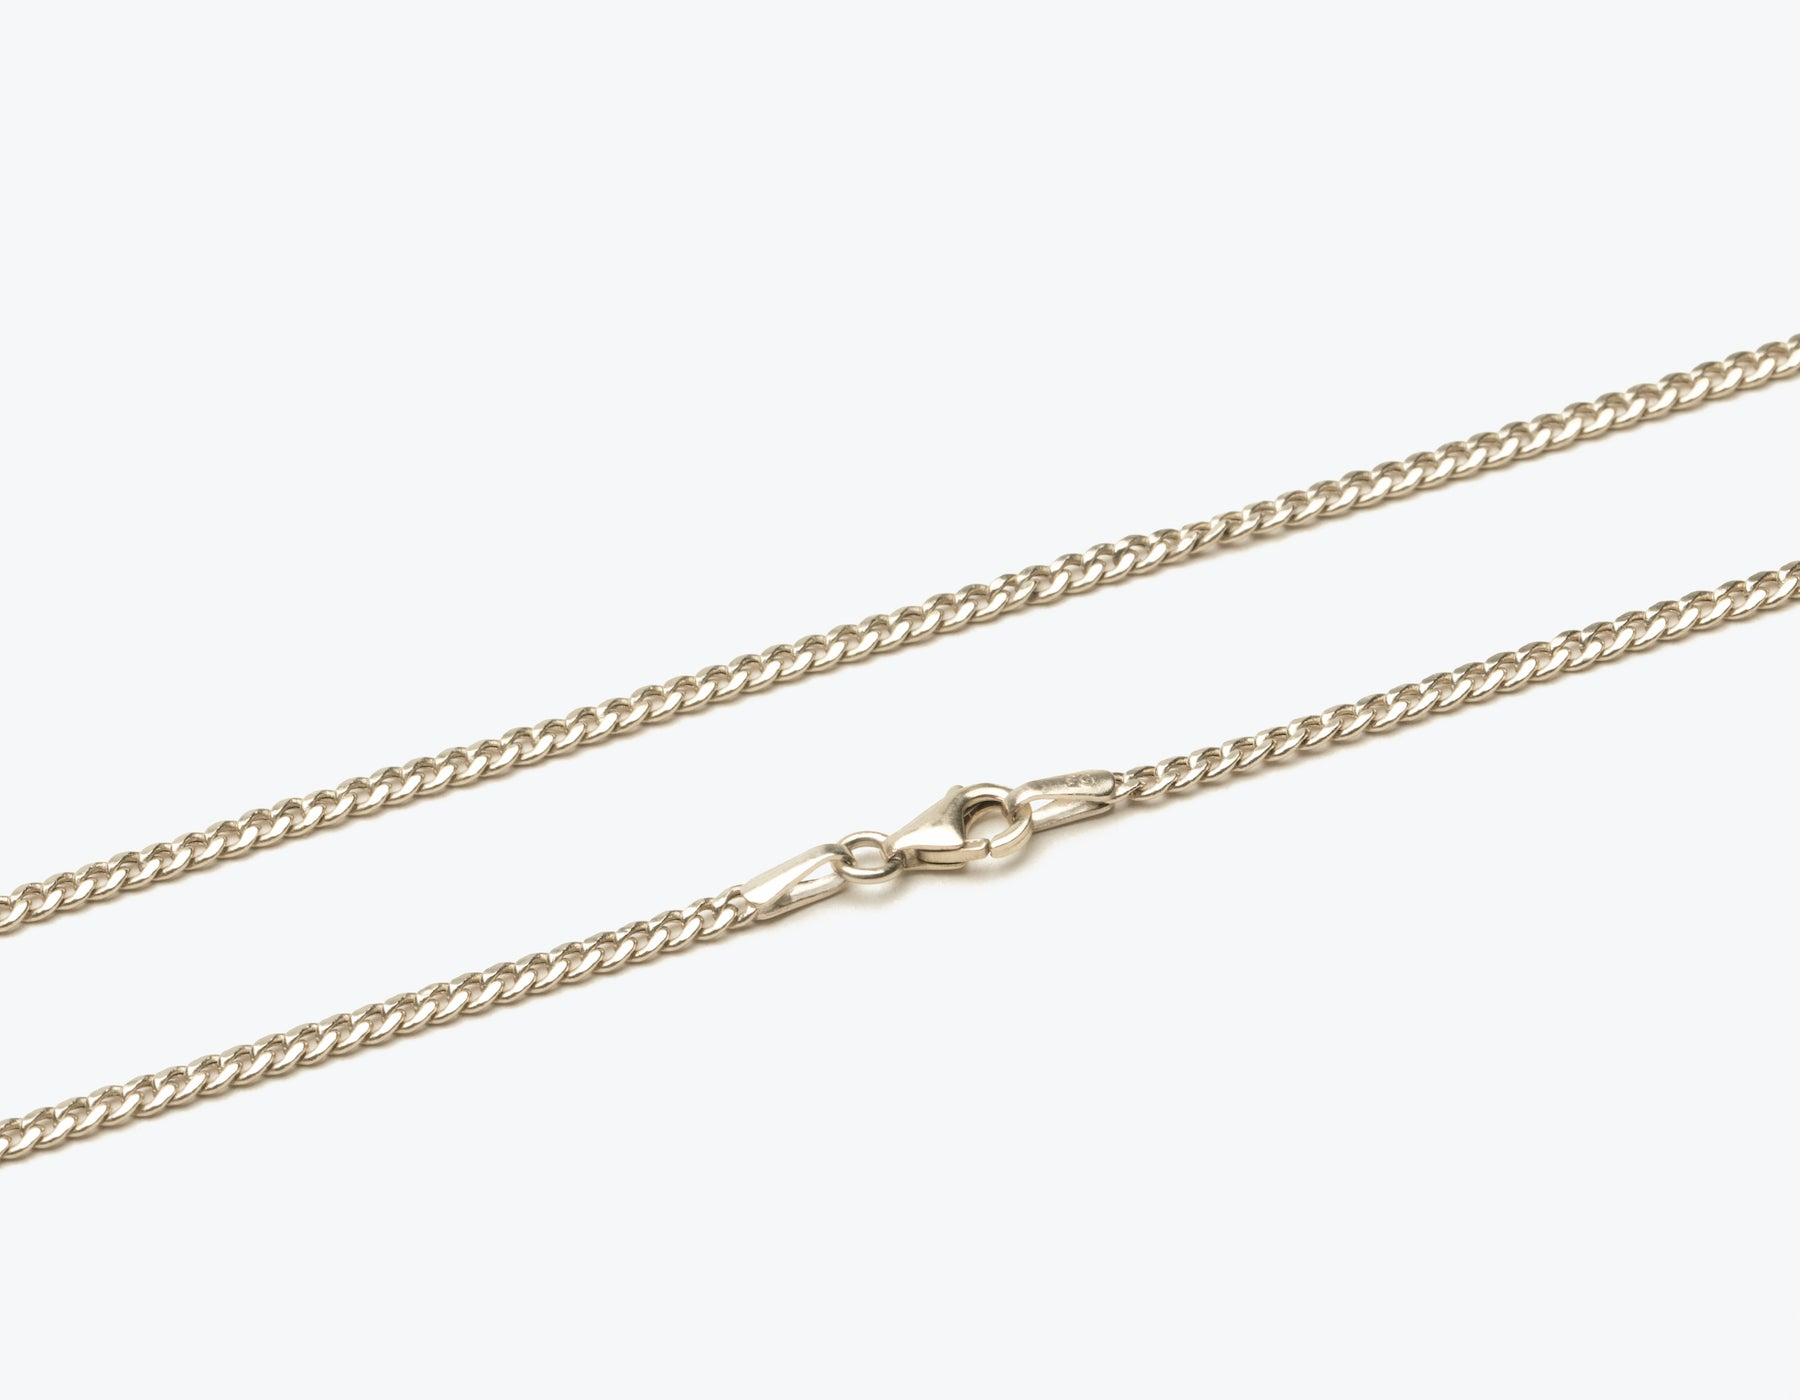 Simple classic 14k solid gold Cuban Link Chain necklace with lobster clasp by Vrai & Oro sustainable jewelry, 14K White Gold